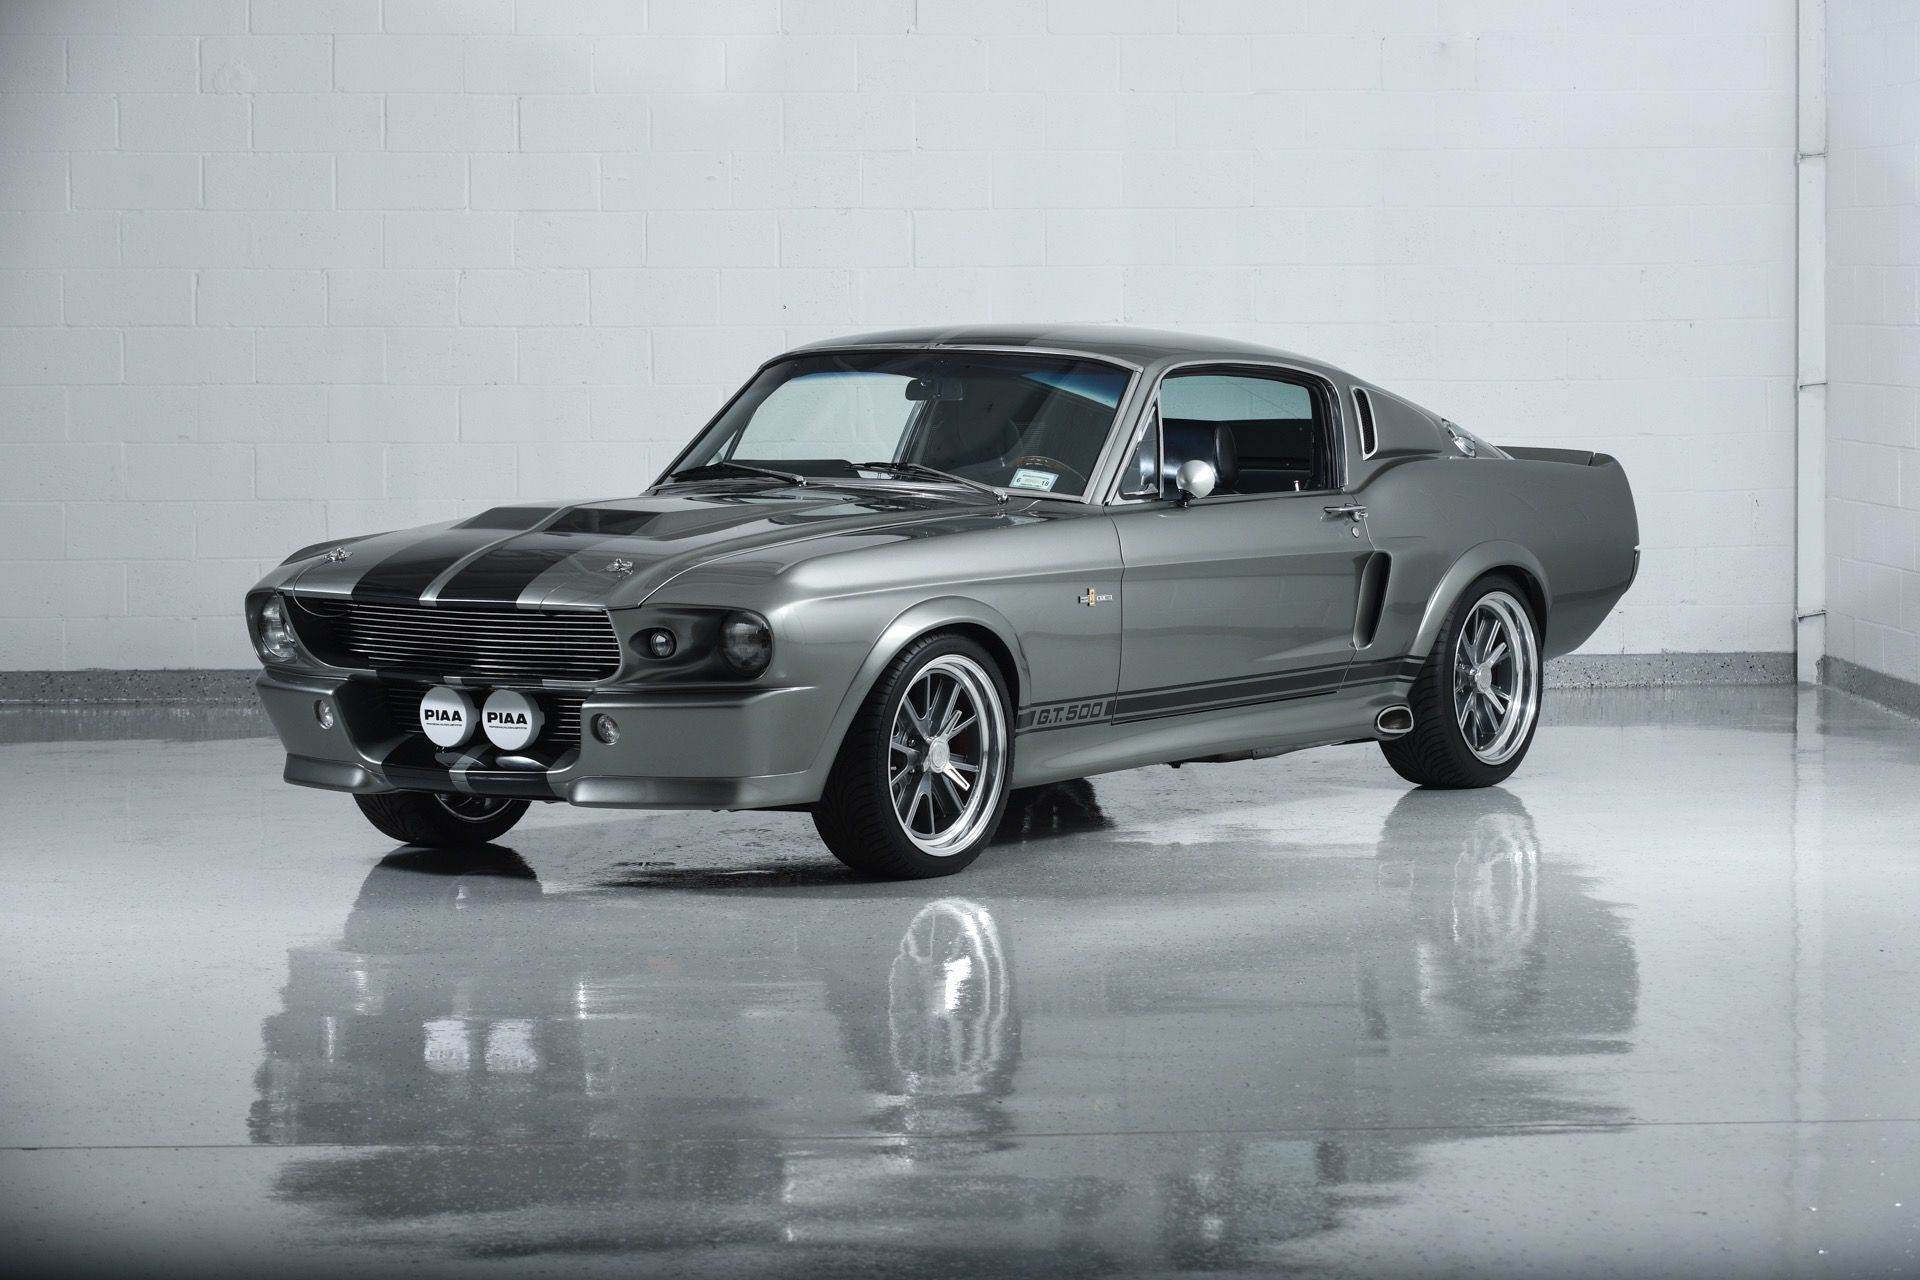 1967 Ford Mustang Fastback Eleanor Tribute Mustang Fastback